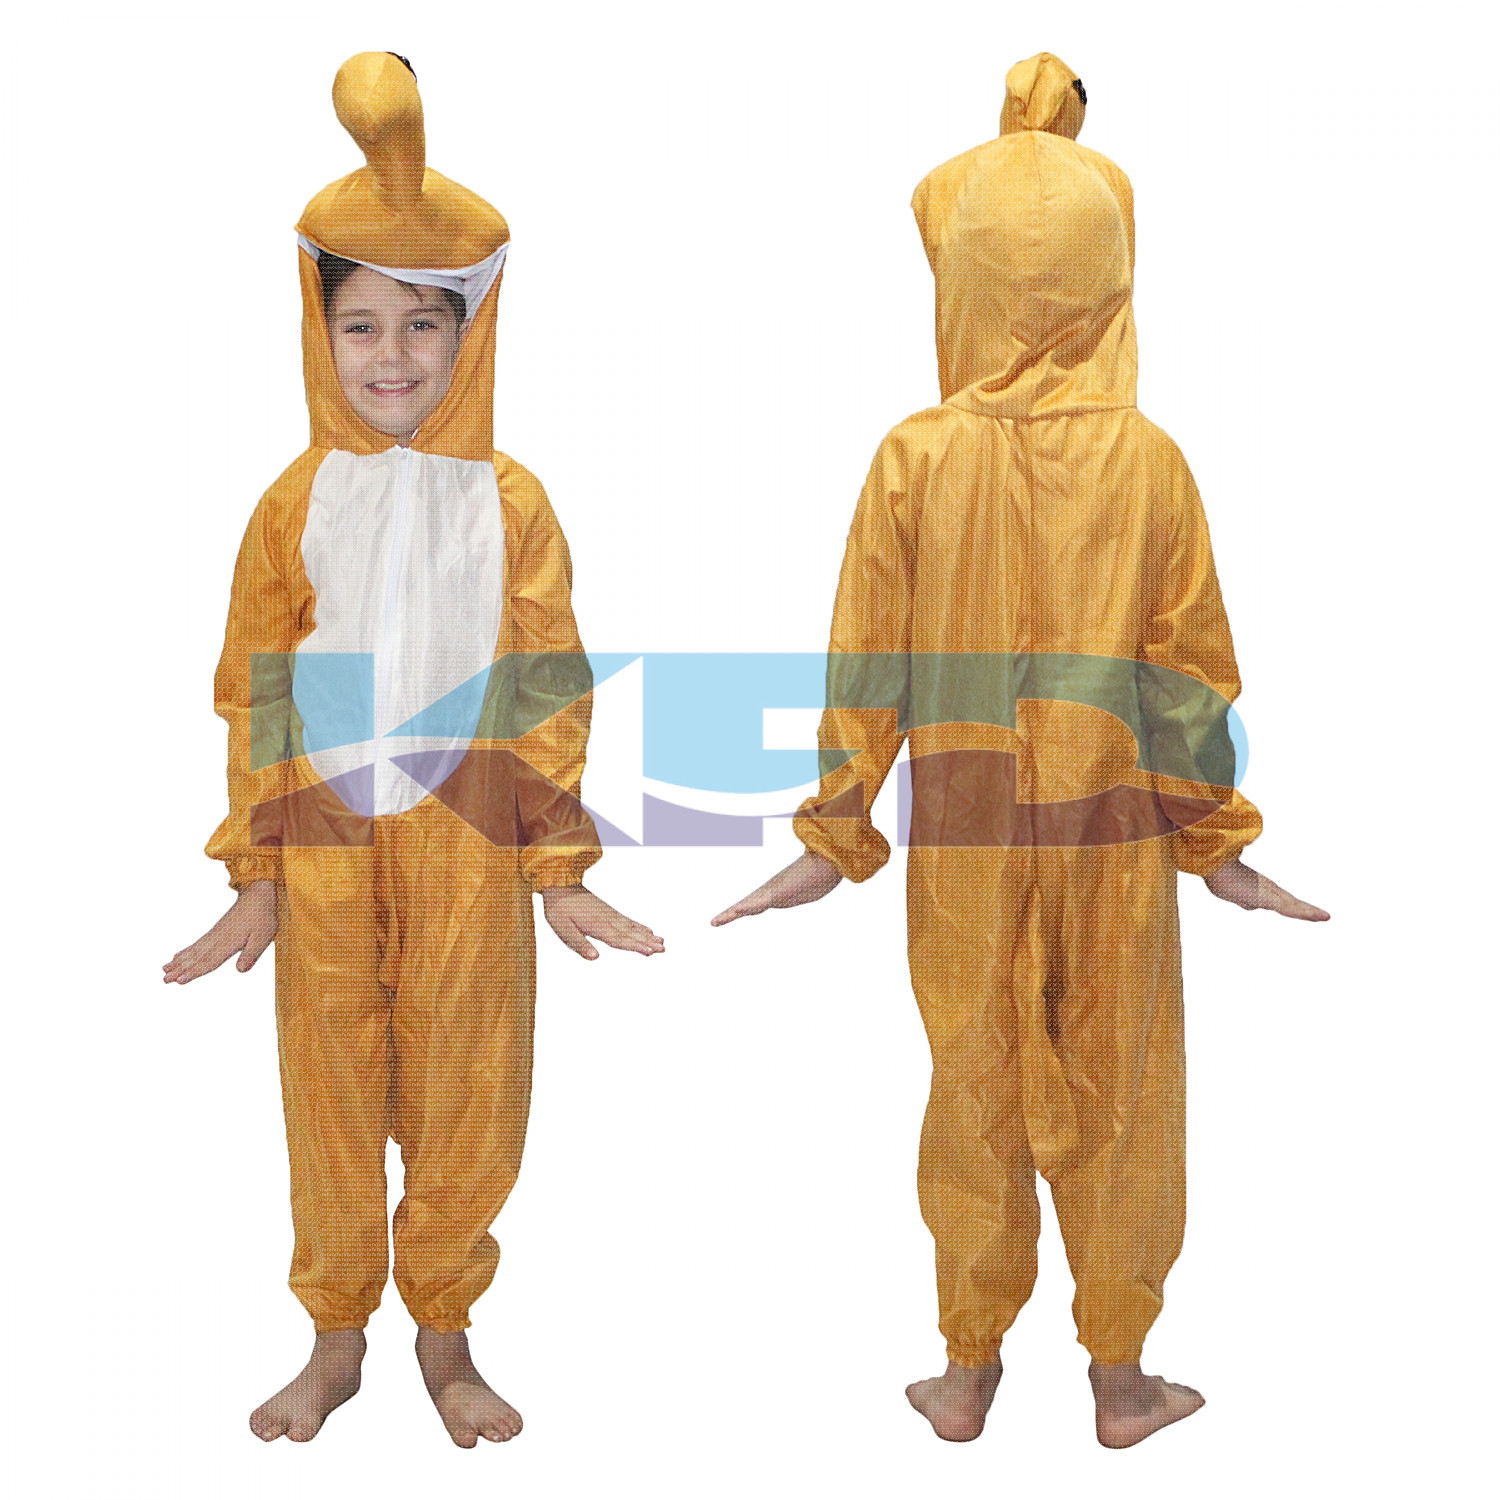 Camel fancy dress for kids,Farm Animal Costume for School Annual function/Theme Party/Competition/Stage Shows Dress